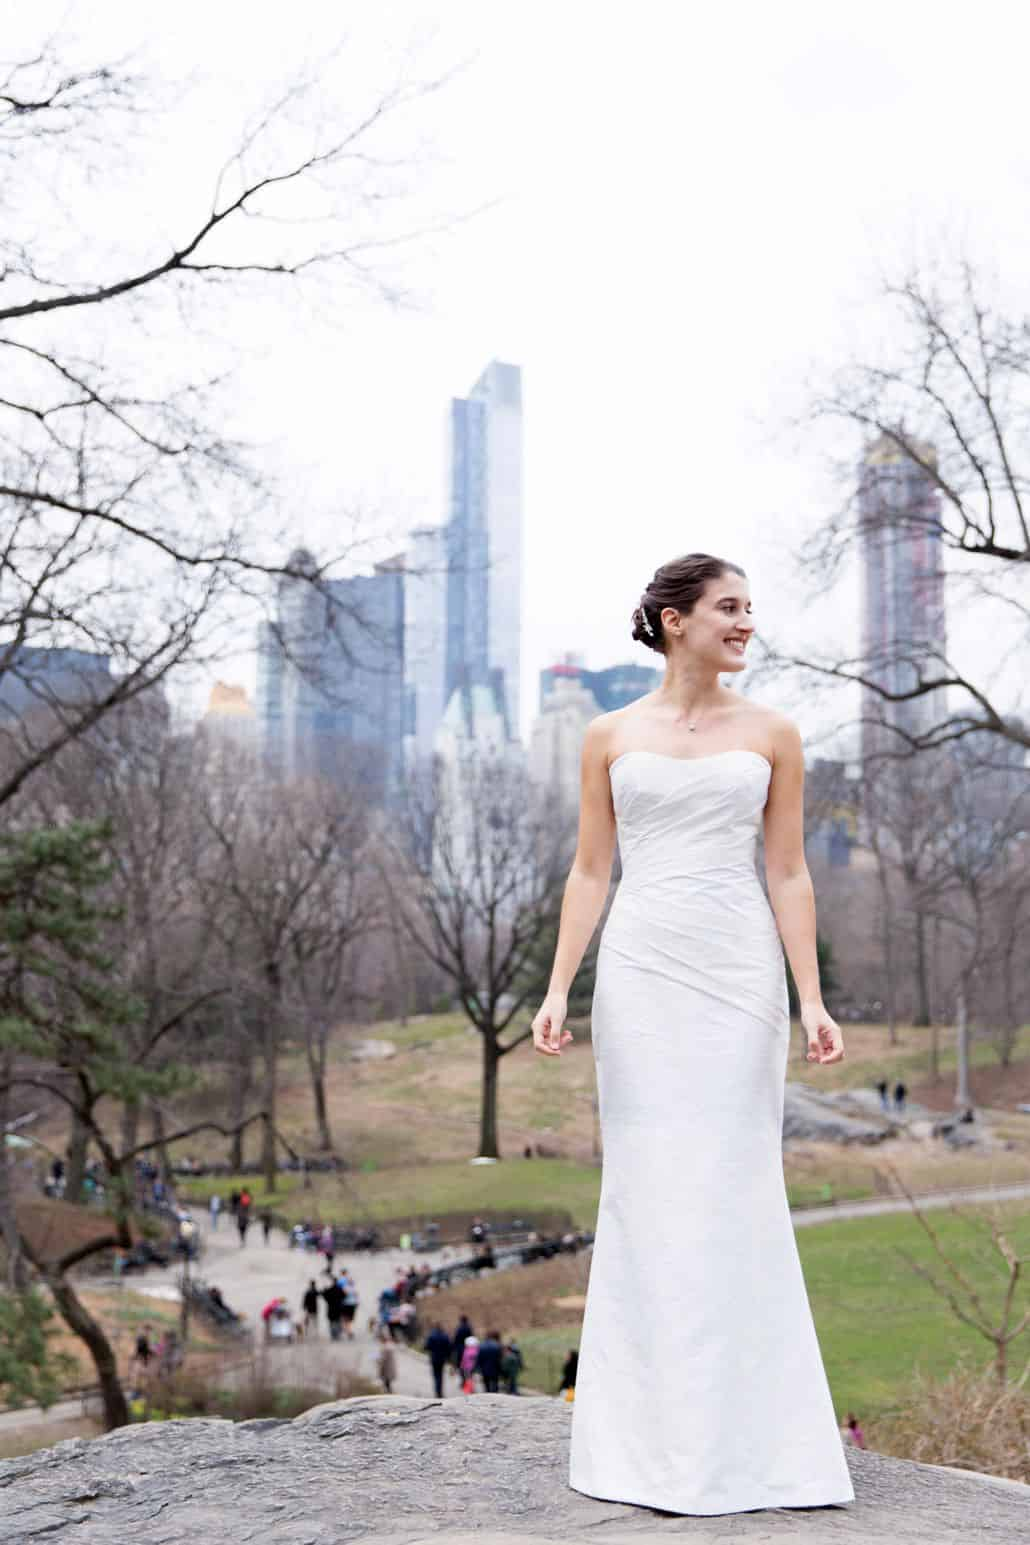 Bride in Central Park for Spring Wedding photo shoot in March in New York. Veka Bridal wedding dress. City skyline and Central Park tree background.